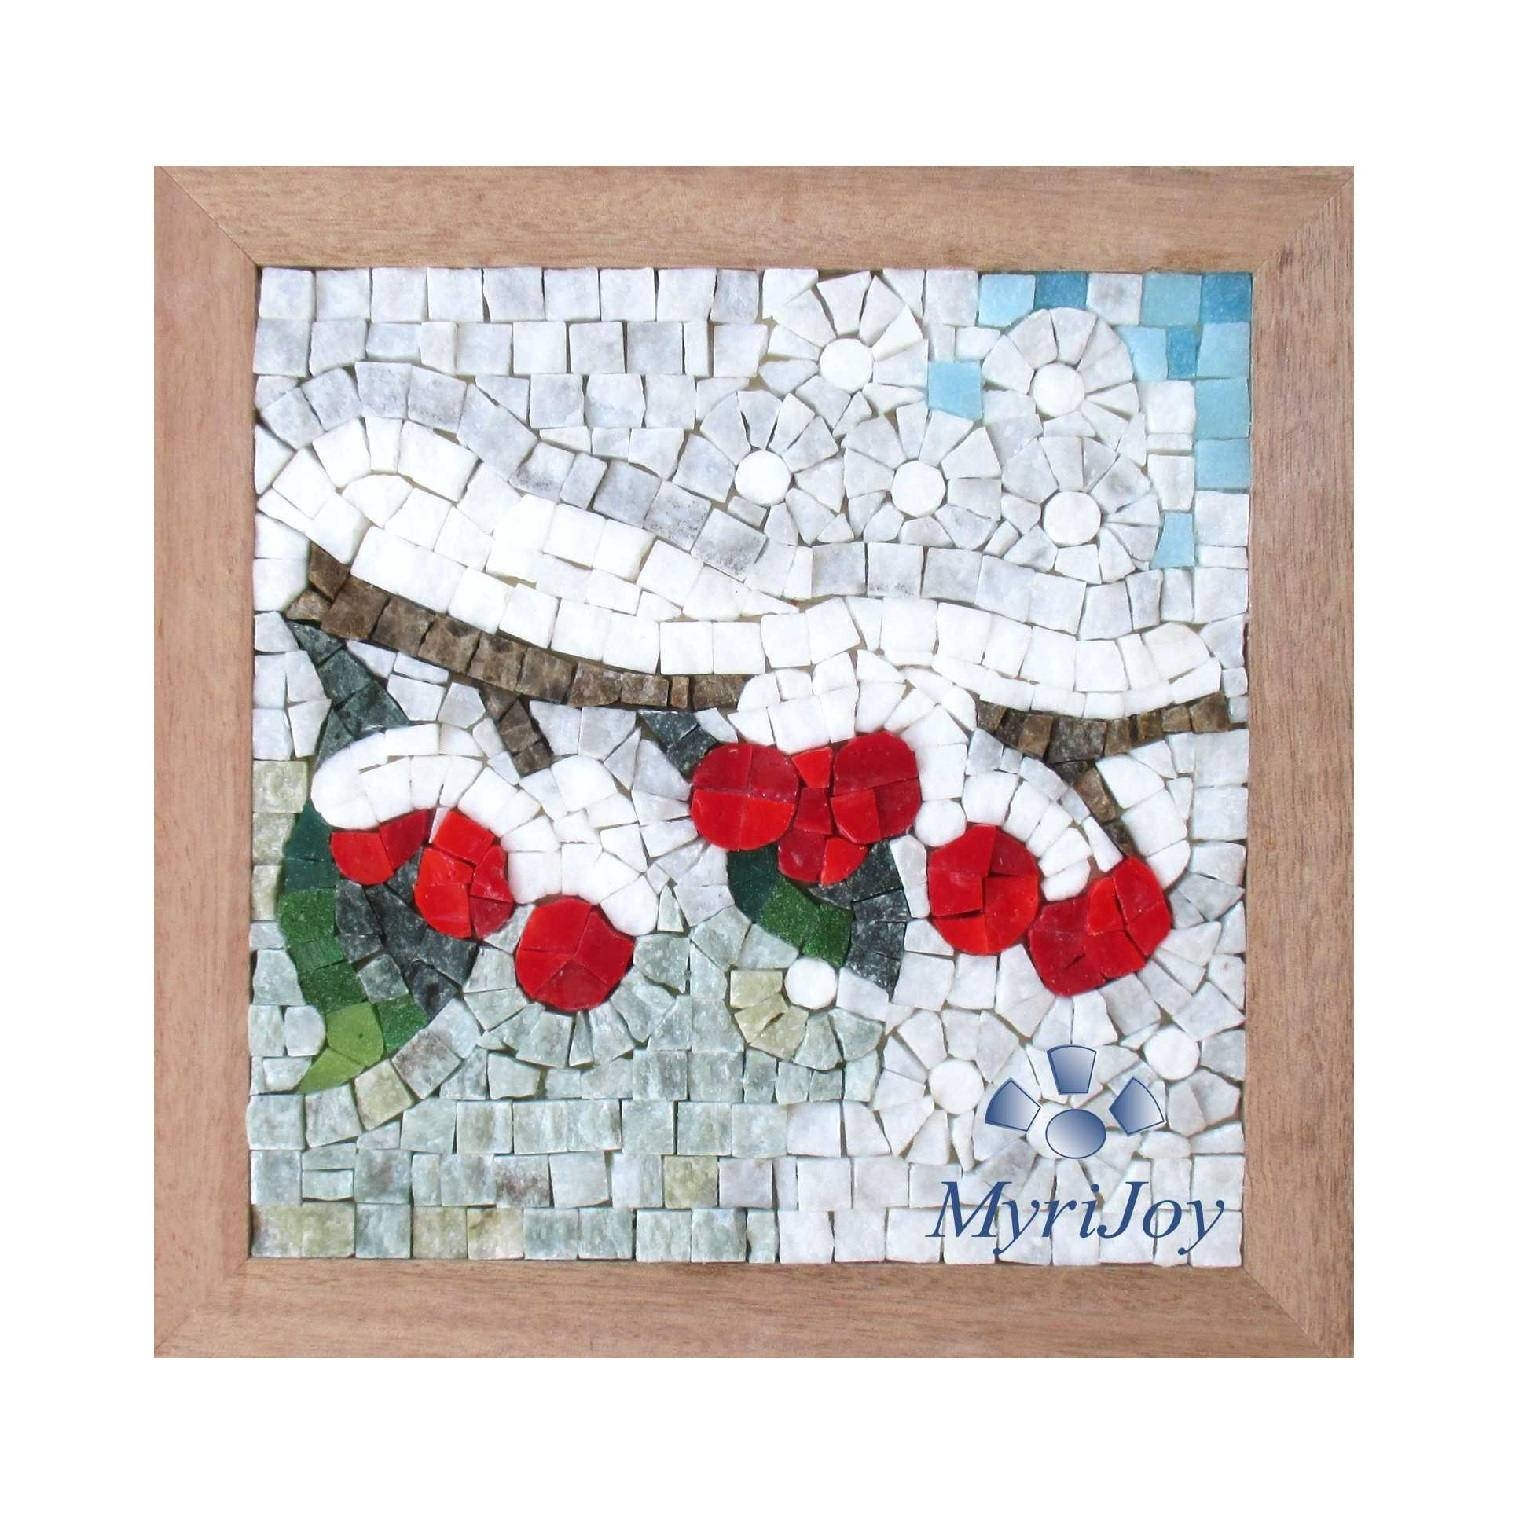 Four Seasons Winter Mosaic Craft Kit For Adults Diy Mosaics Pertaining To Most Recent Mosaic Art Kits For Adults (View 9 of 20)